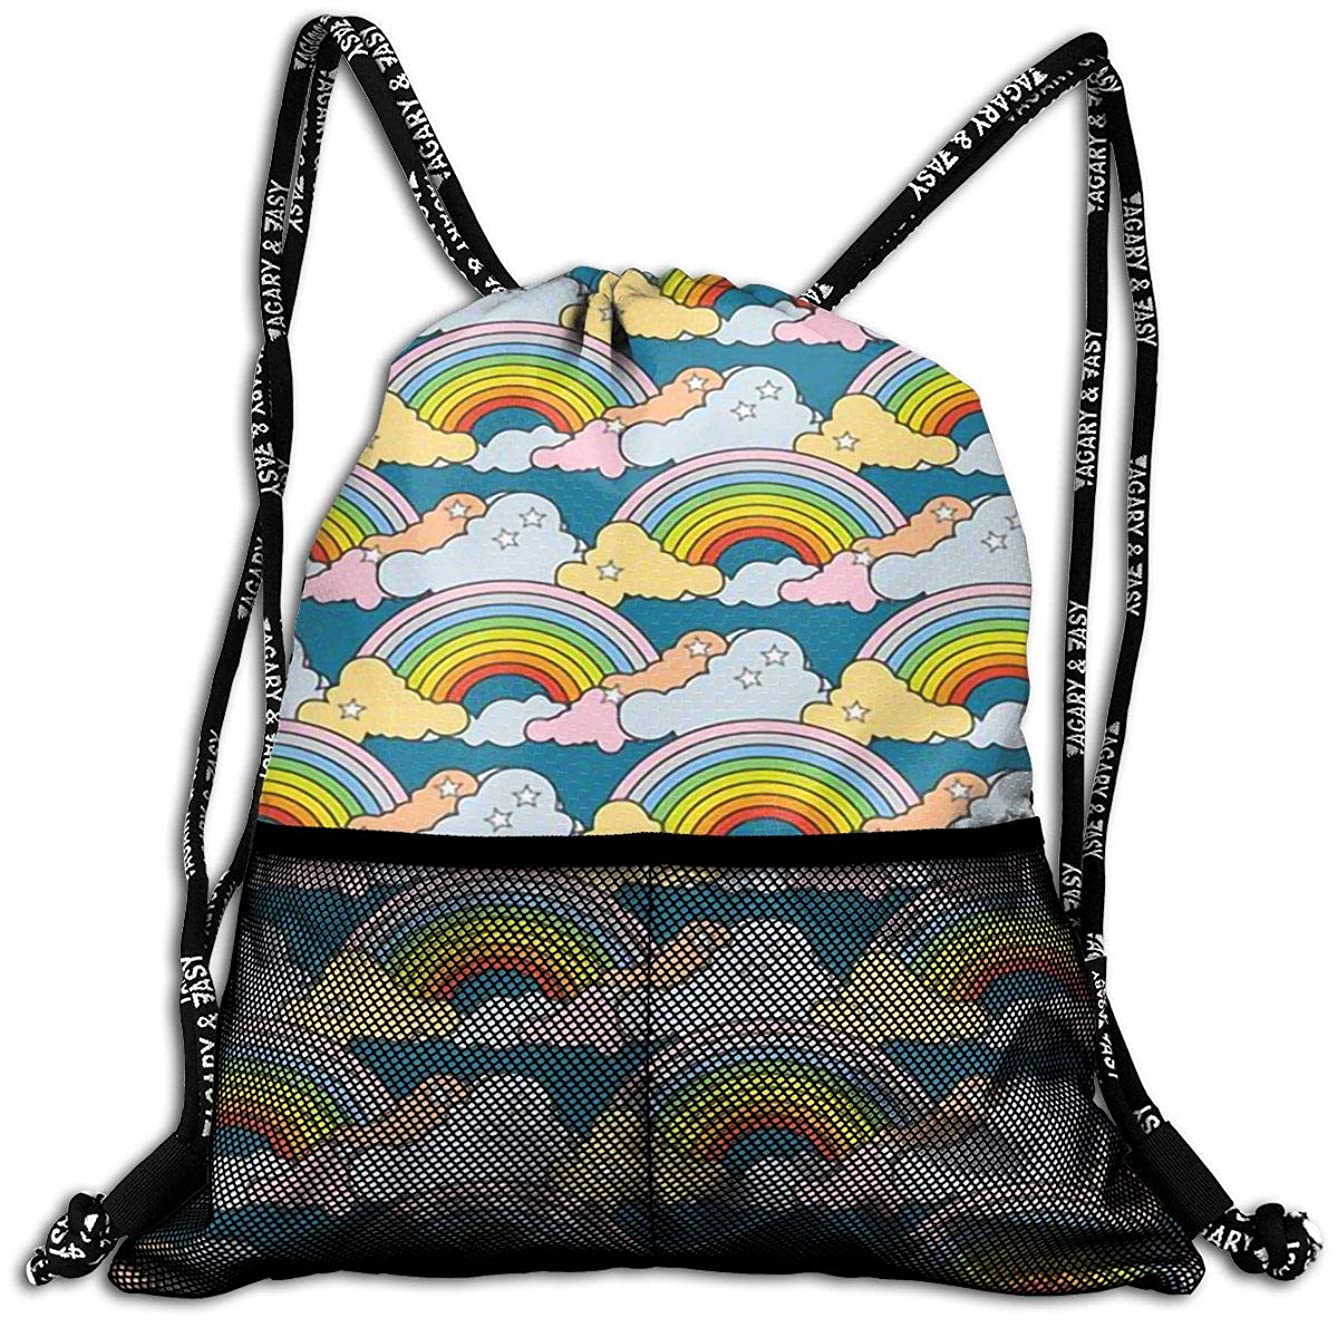 Men & Women Rainbow Clouds Drawstring Backpack Casual Cinch Sack Gymsack For Travel Yoga Dance